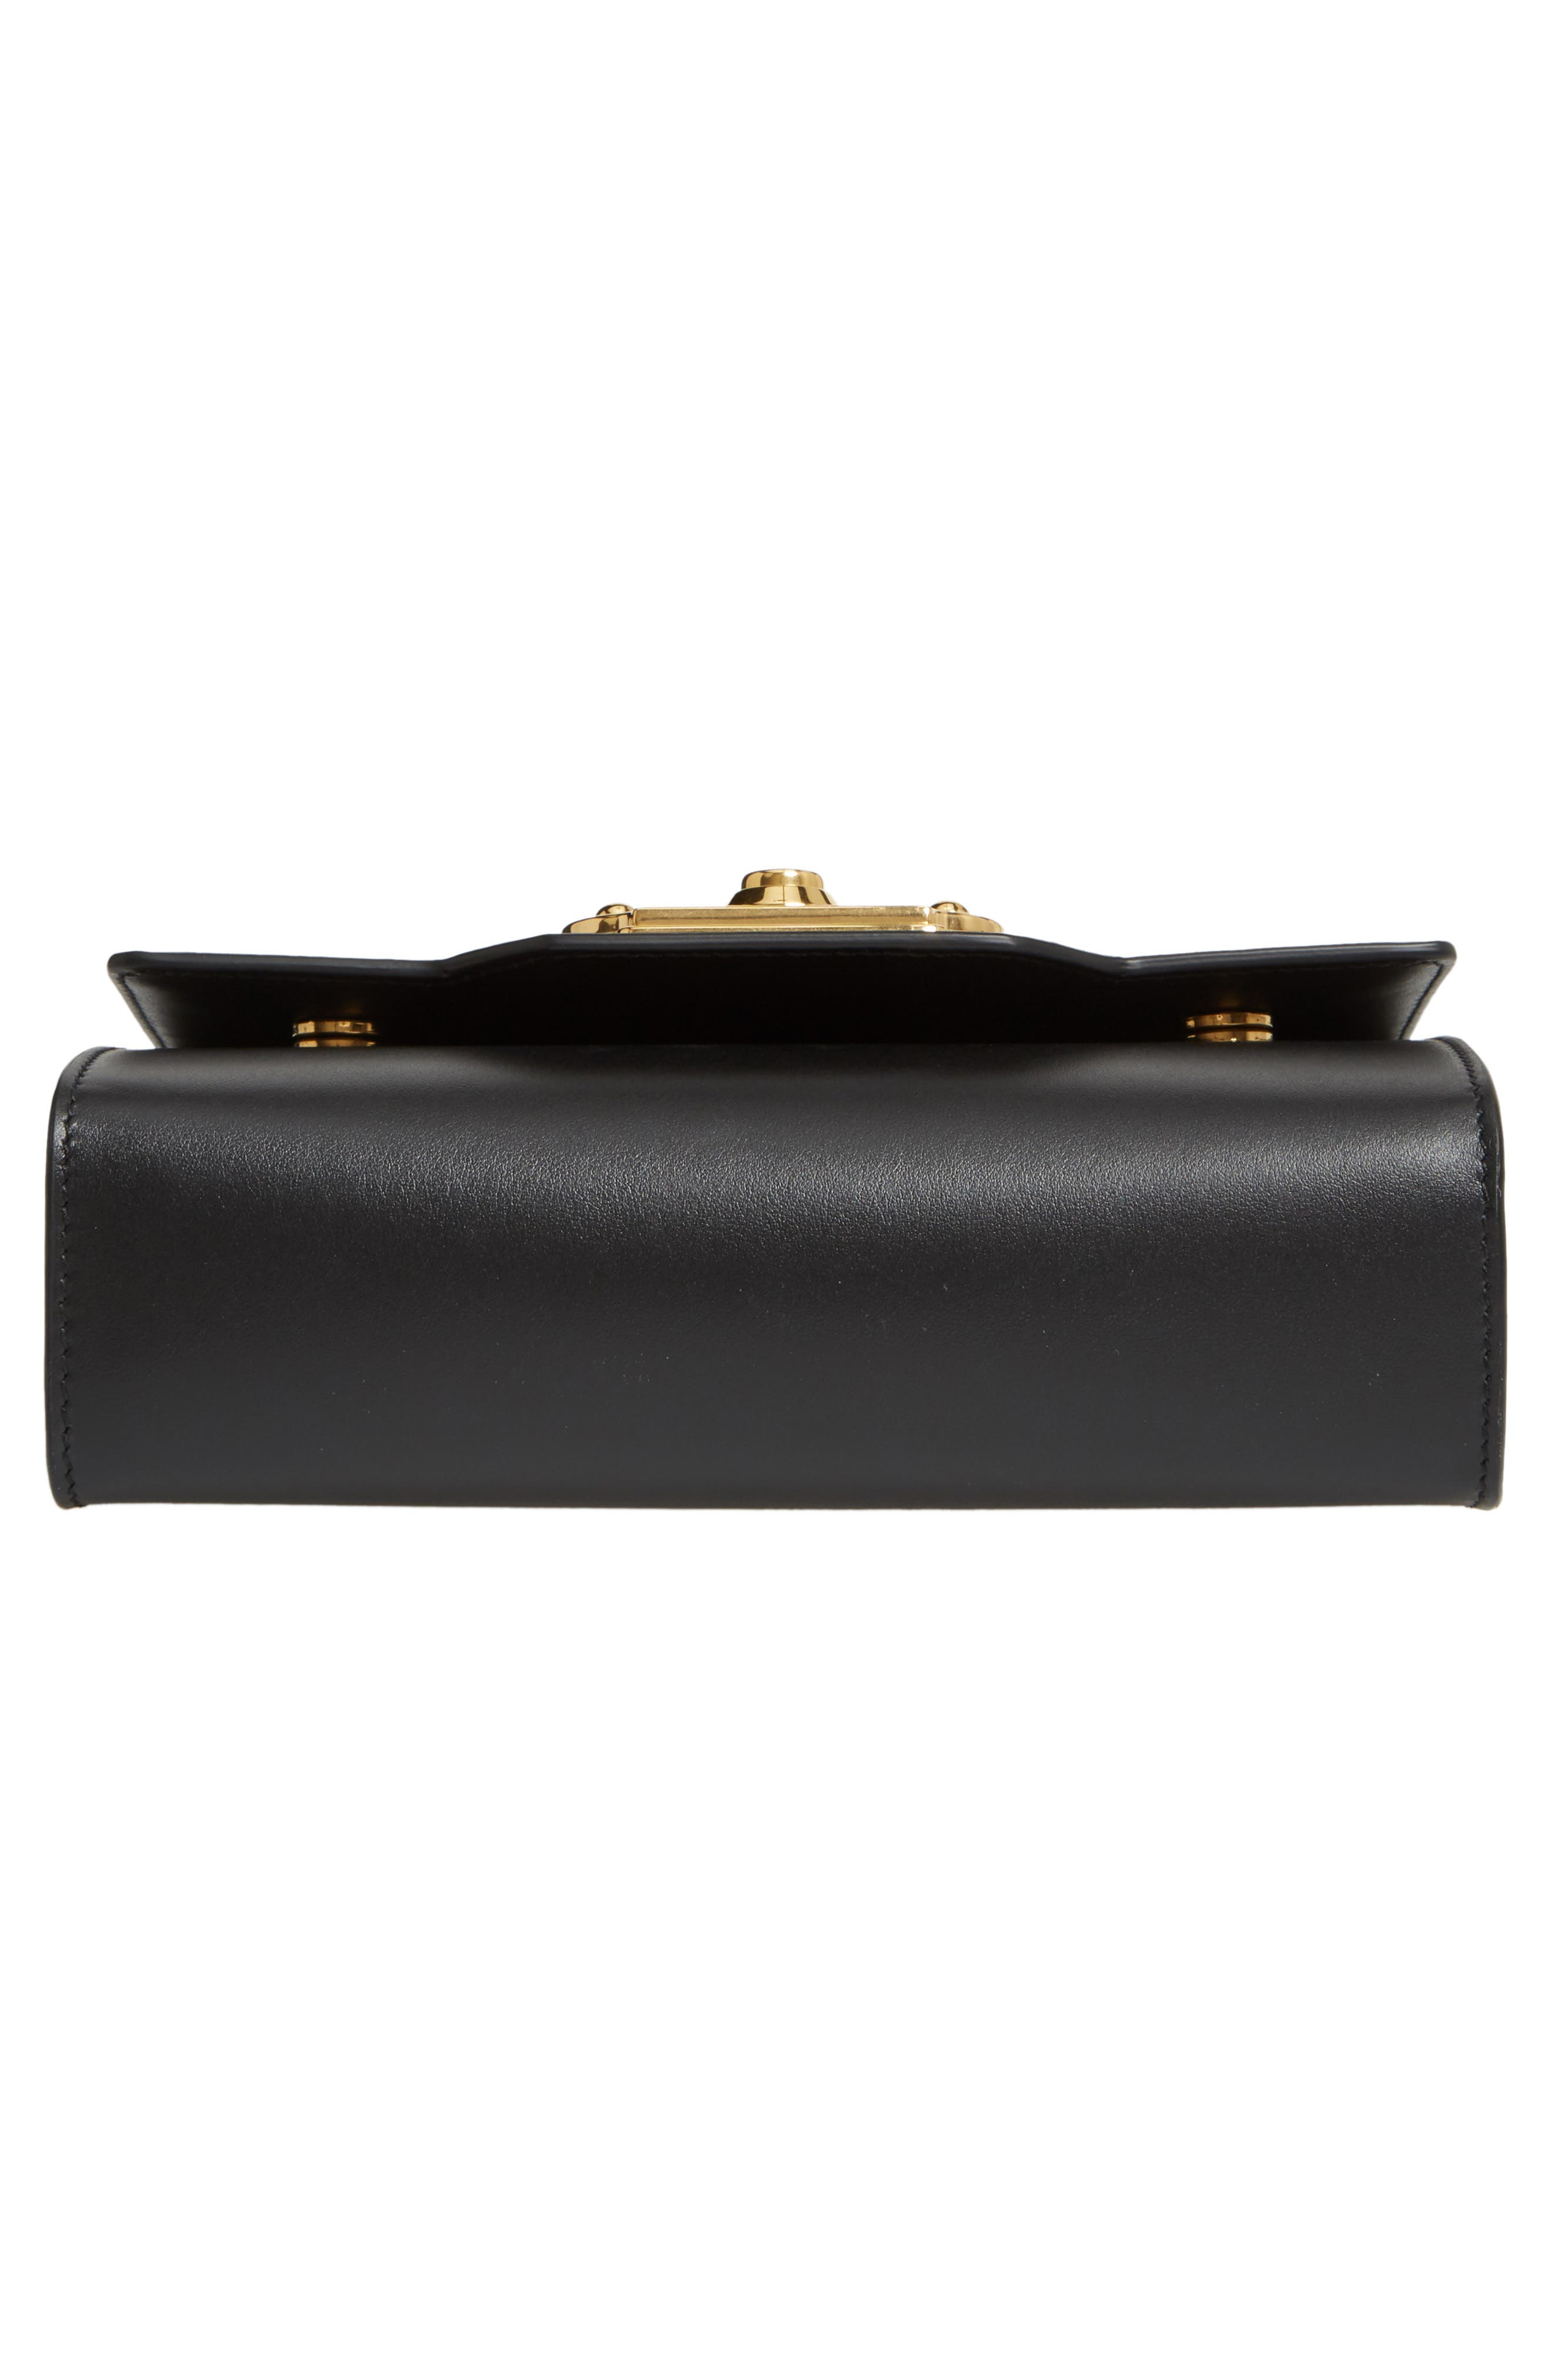 DOLCE&GABBANA, Leather Clutch, Alternate thumbnail 6, color, NERO